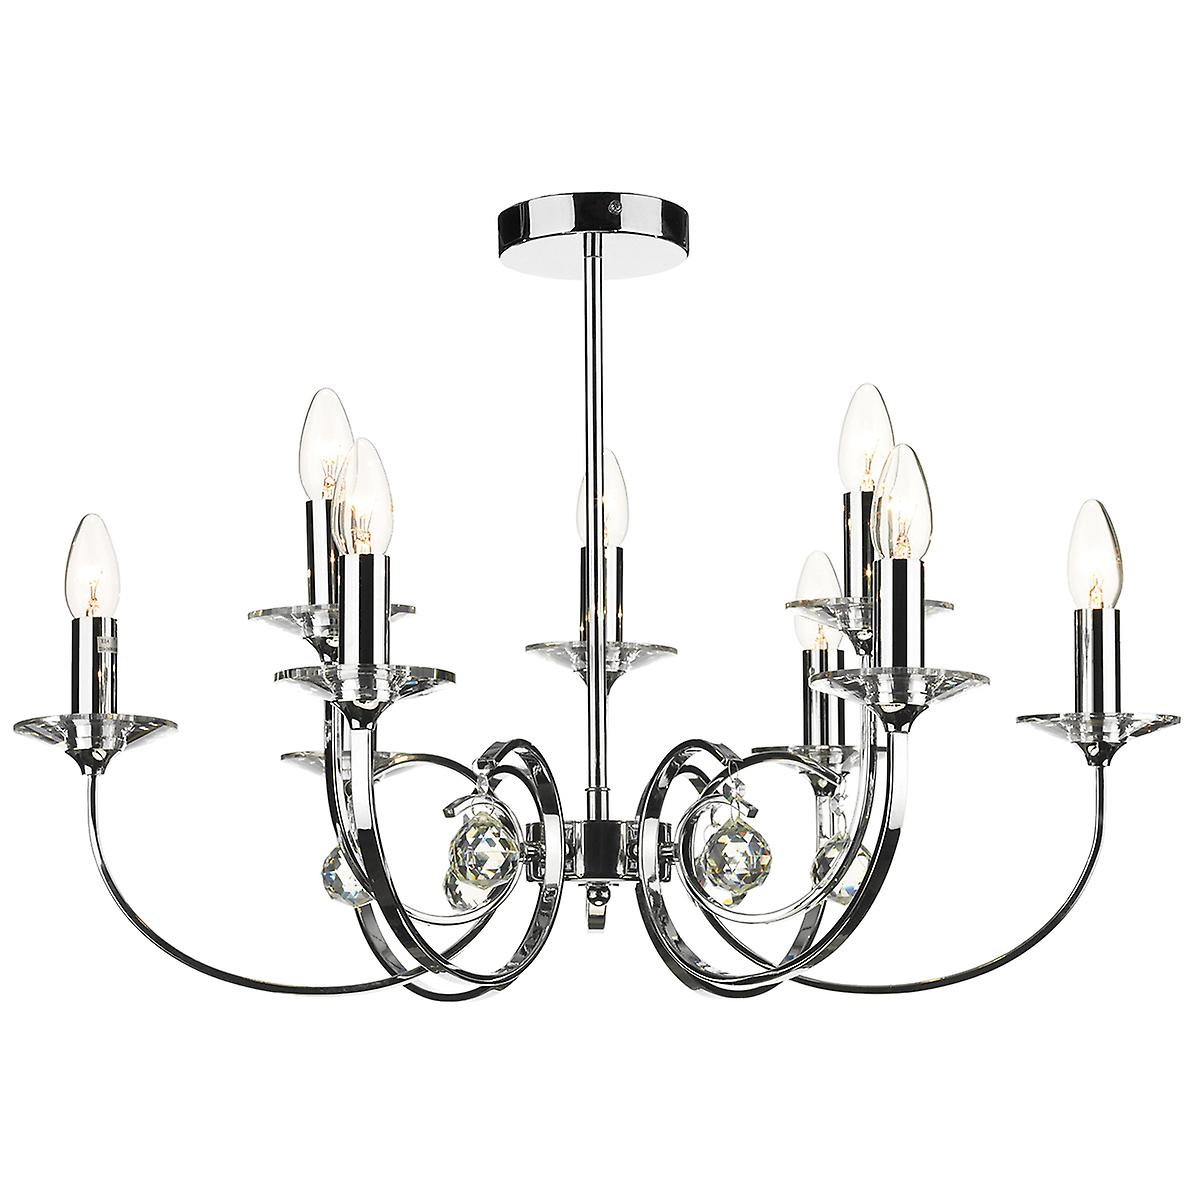 Dar ALL1350 Allegra 9 Arm Modern Chrome Ceiling Pendant With Crystal Sconces